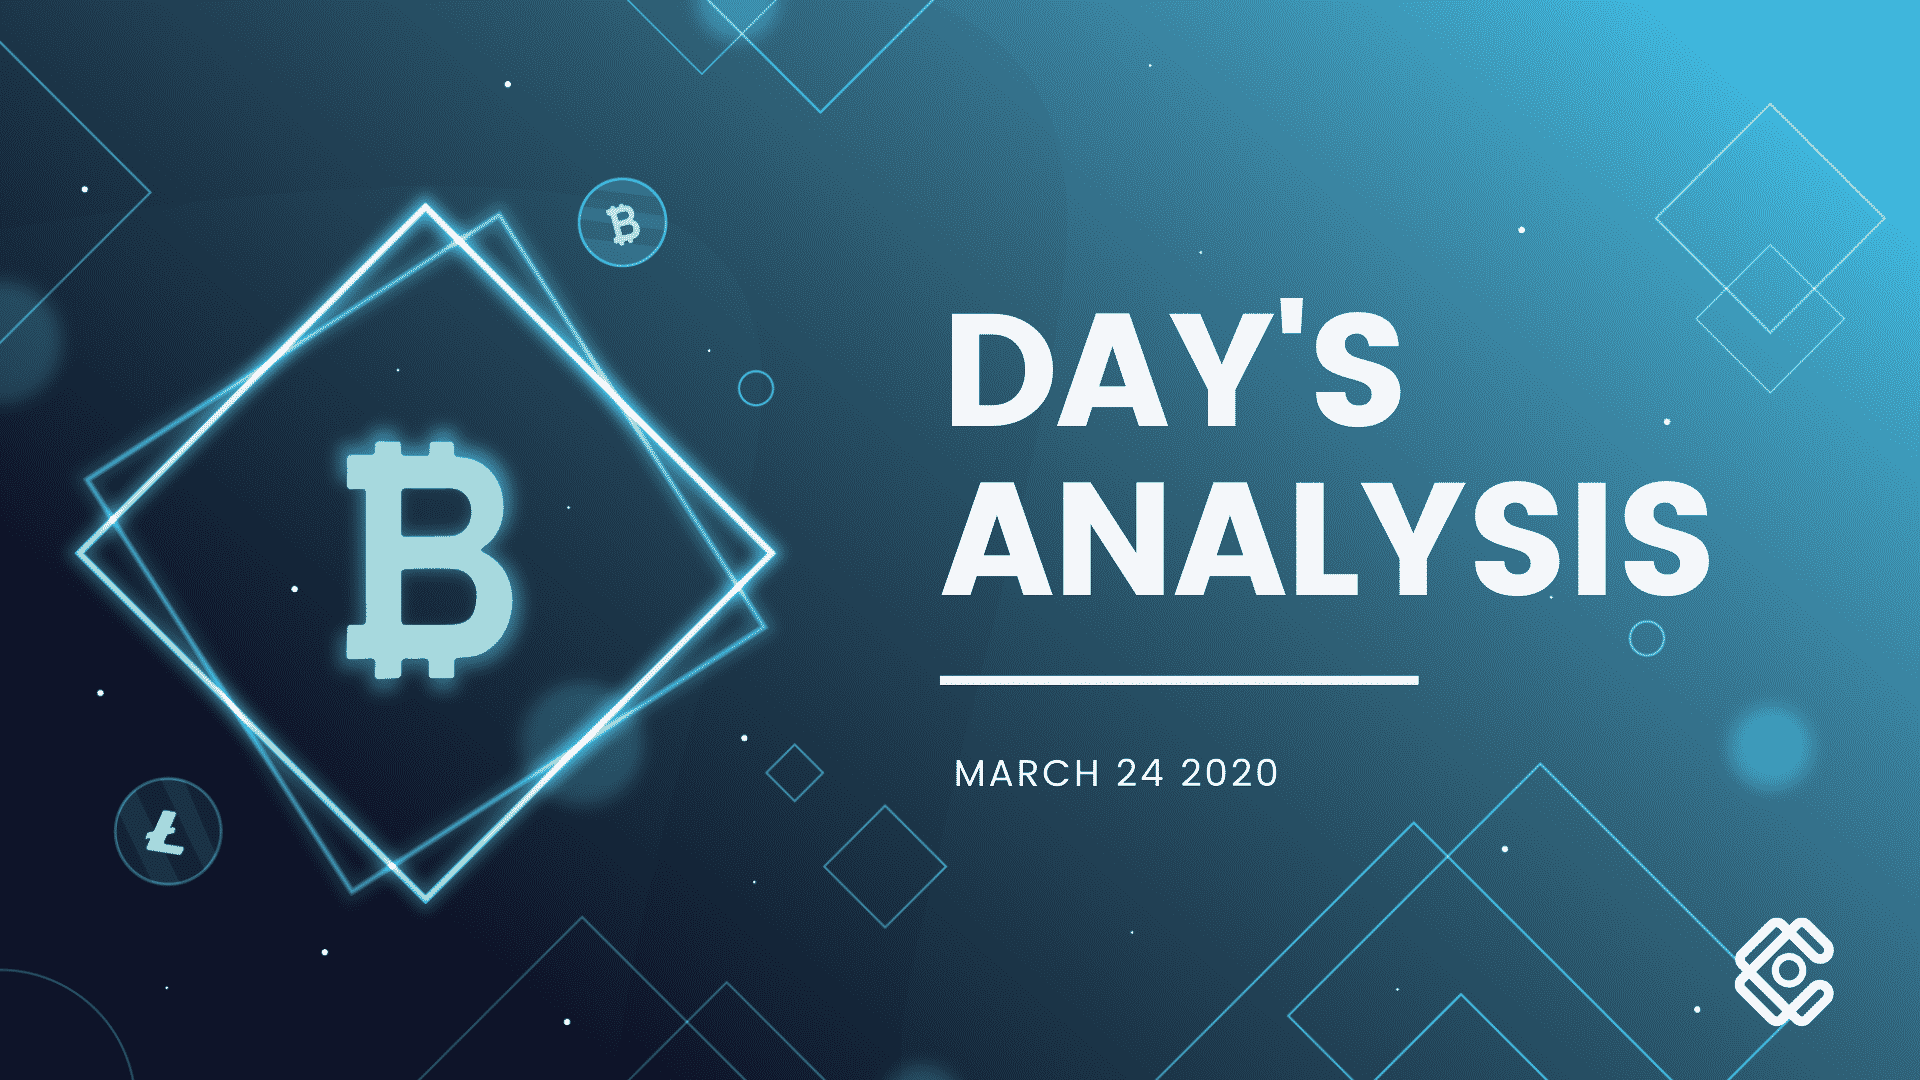 Market Analysis of March 24, 2020